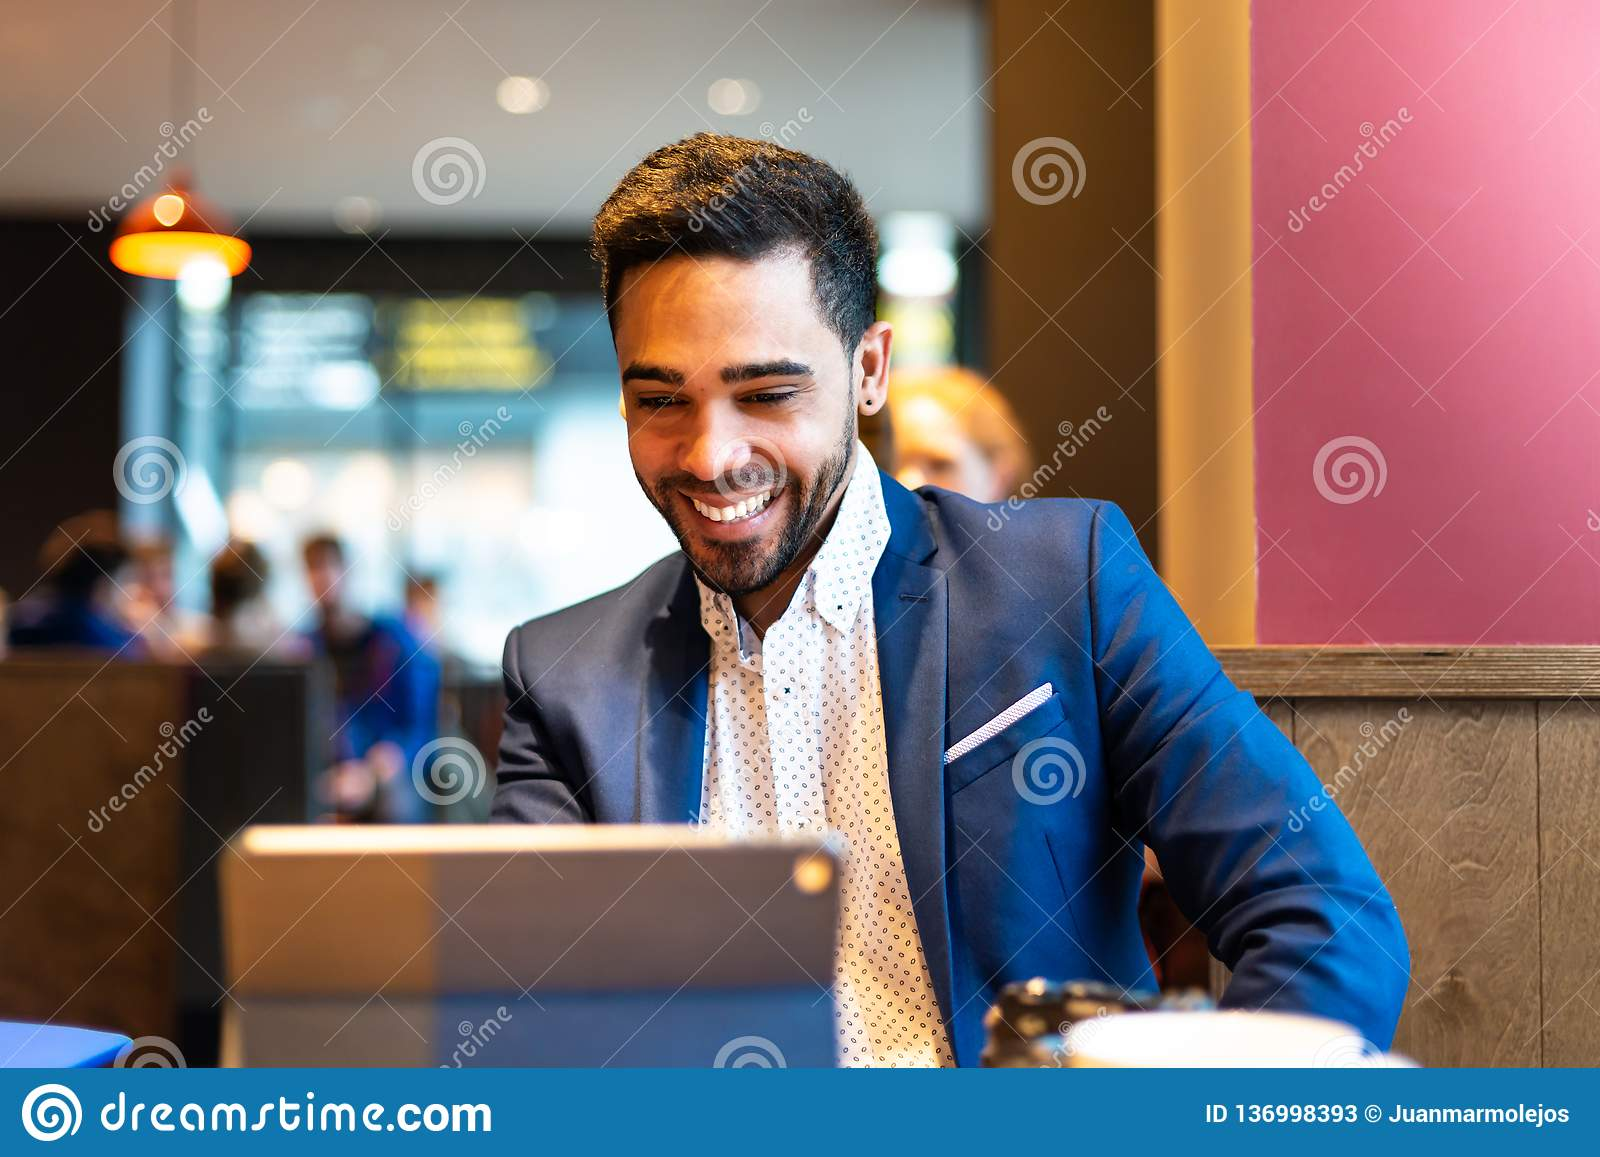 Handsome young man on suit using laptop